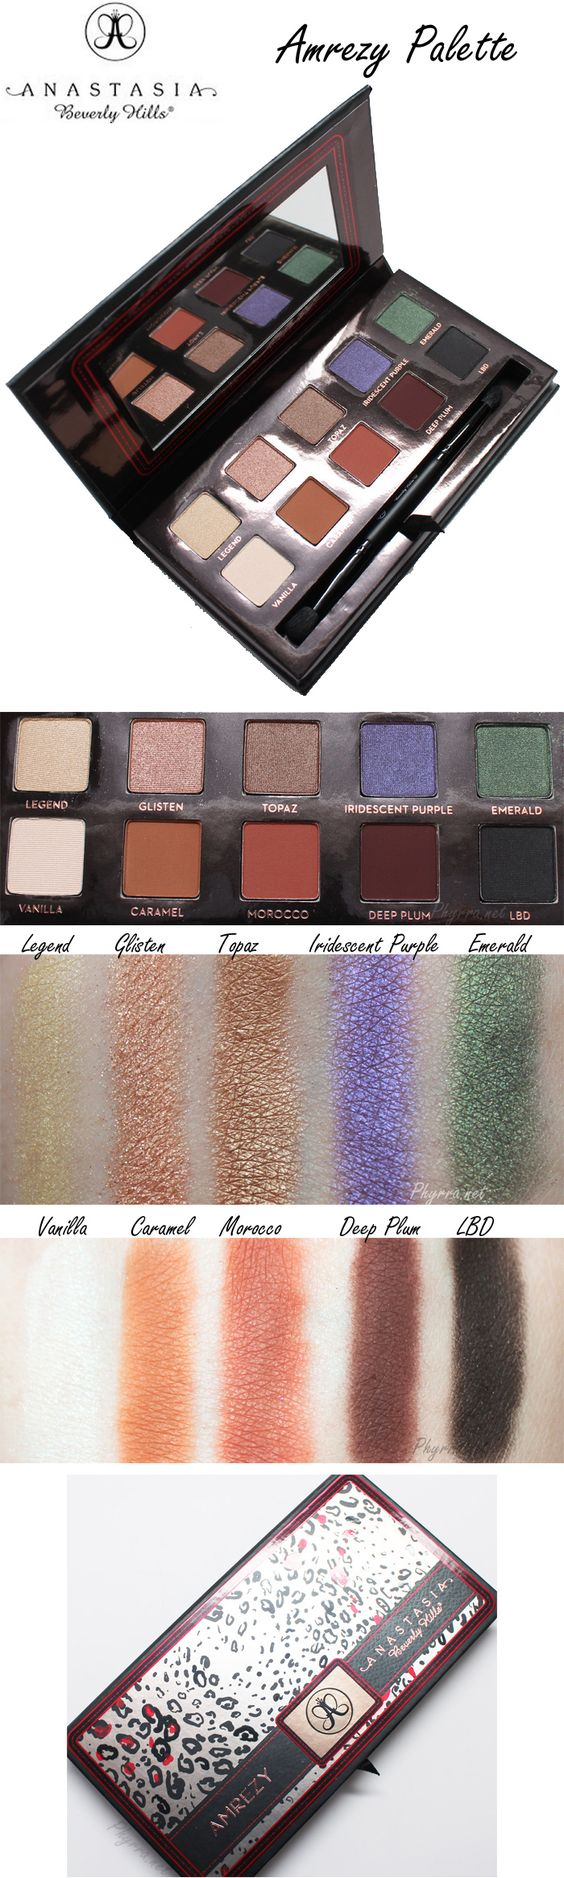 Anastasia Beverly Hills Amrezy Palette Review My Sister